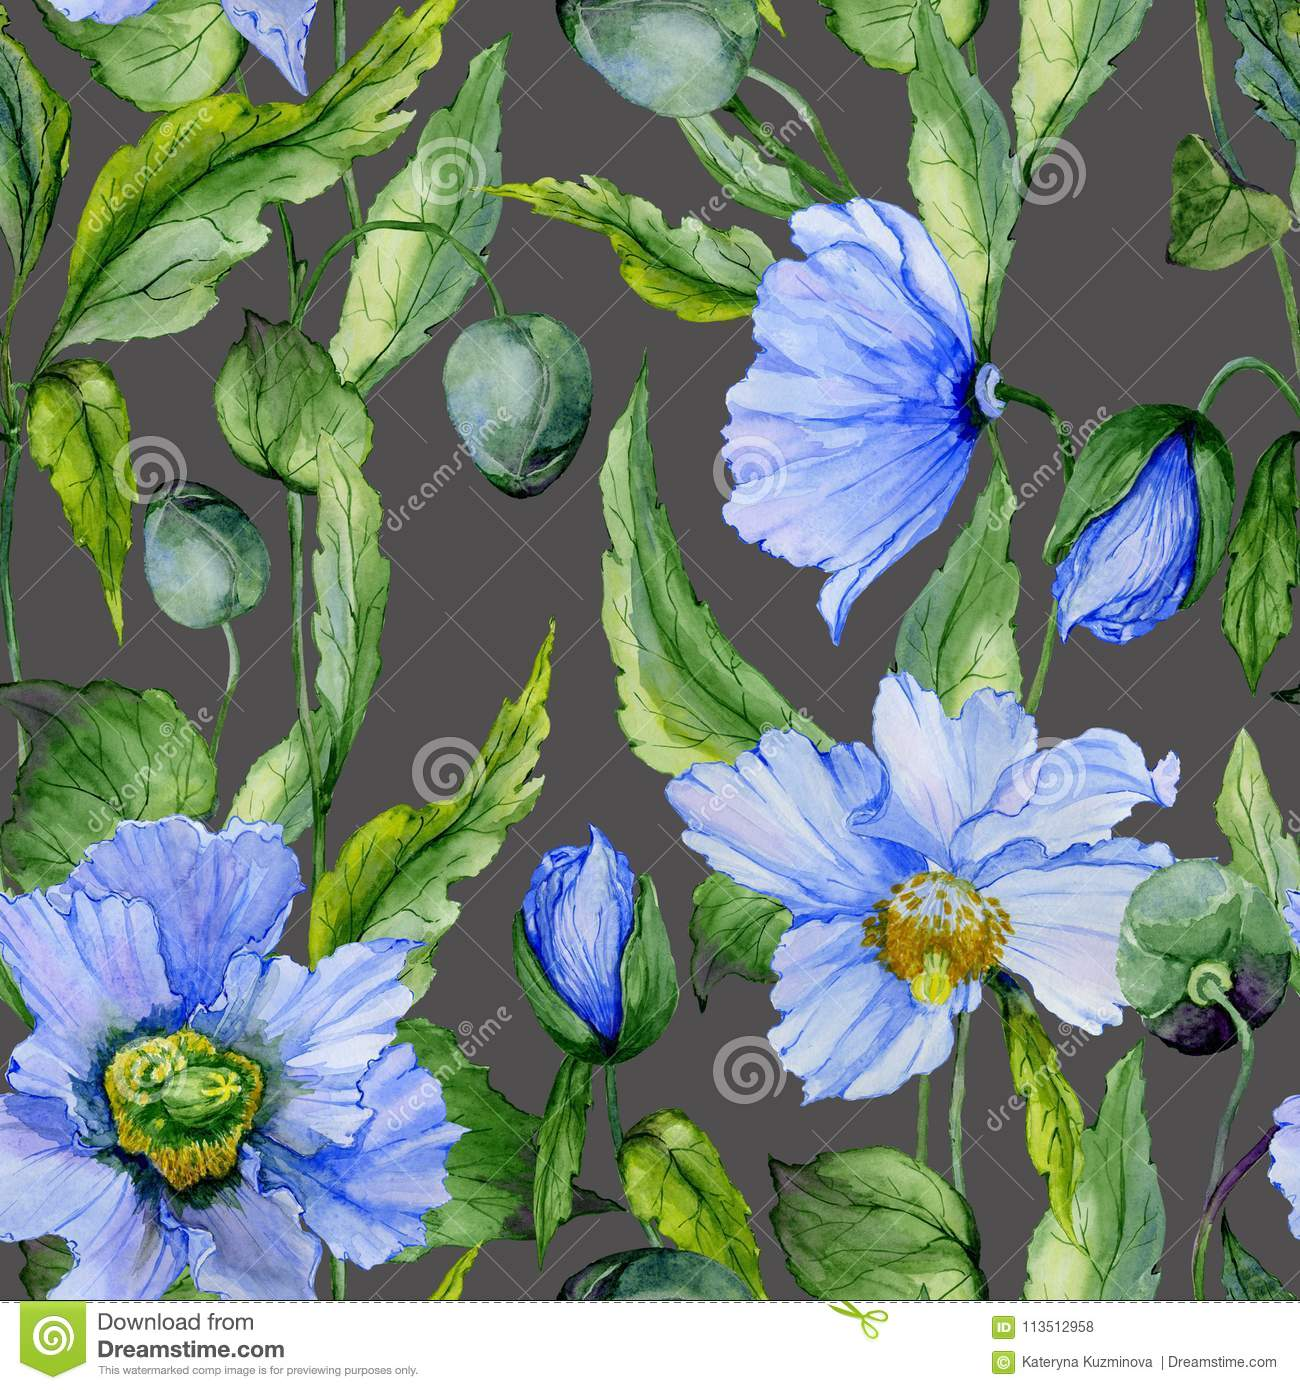 Beautiful Blue Poppy Flowers With Green Leaves On Dark Gray